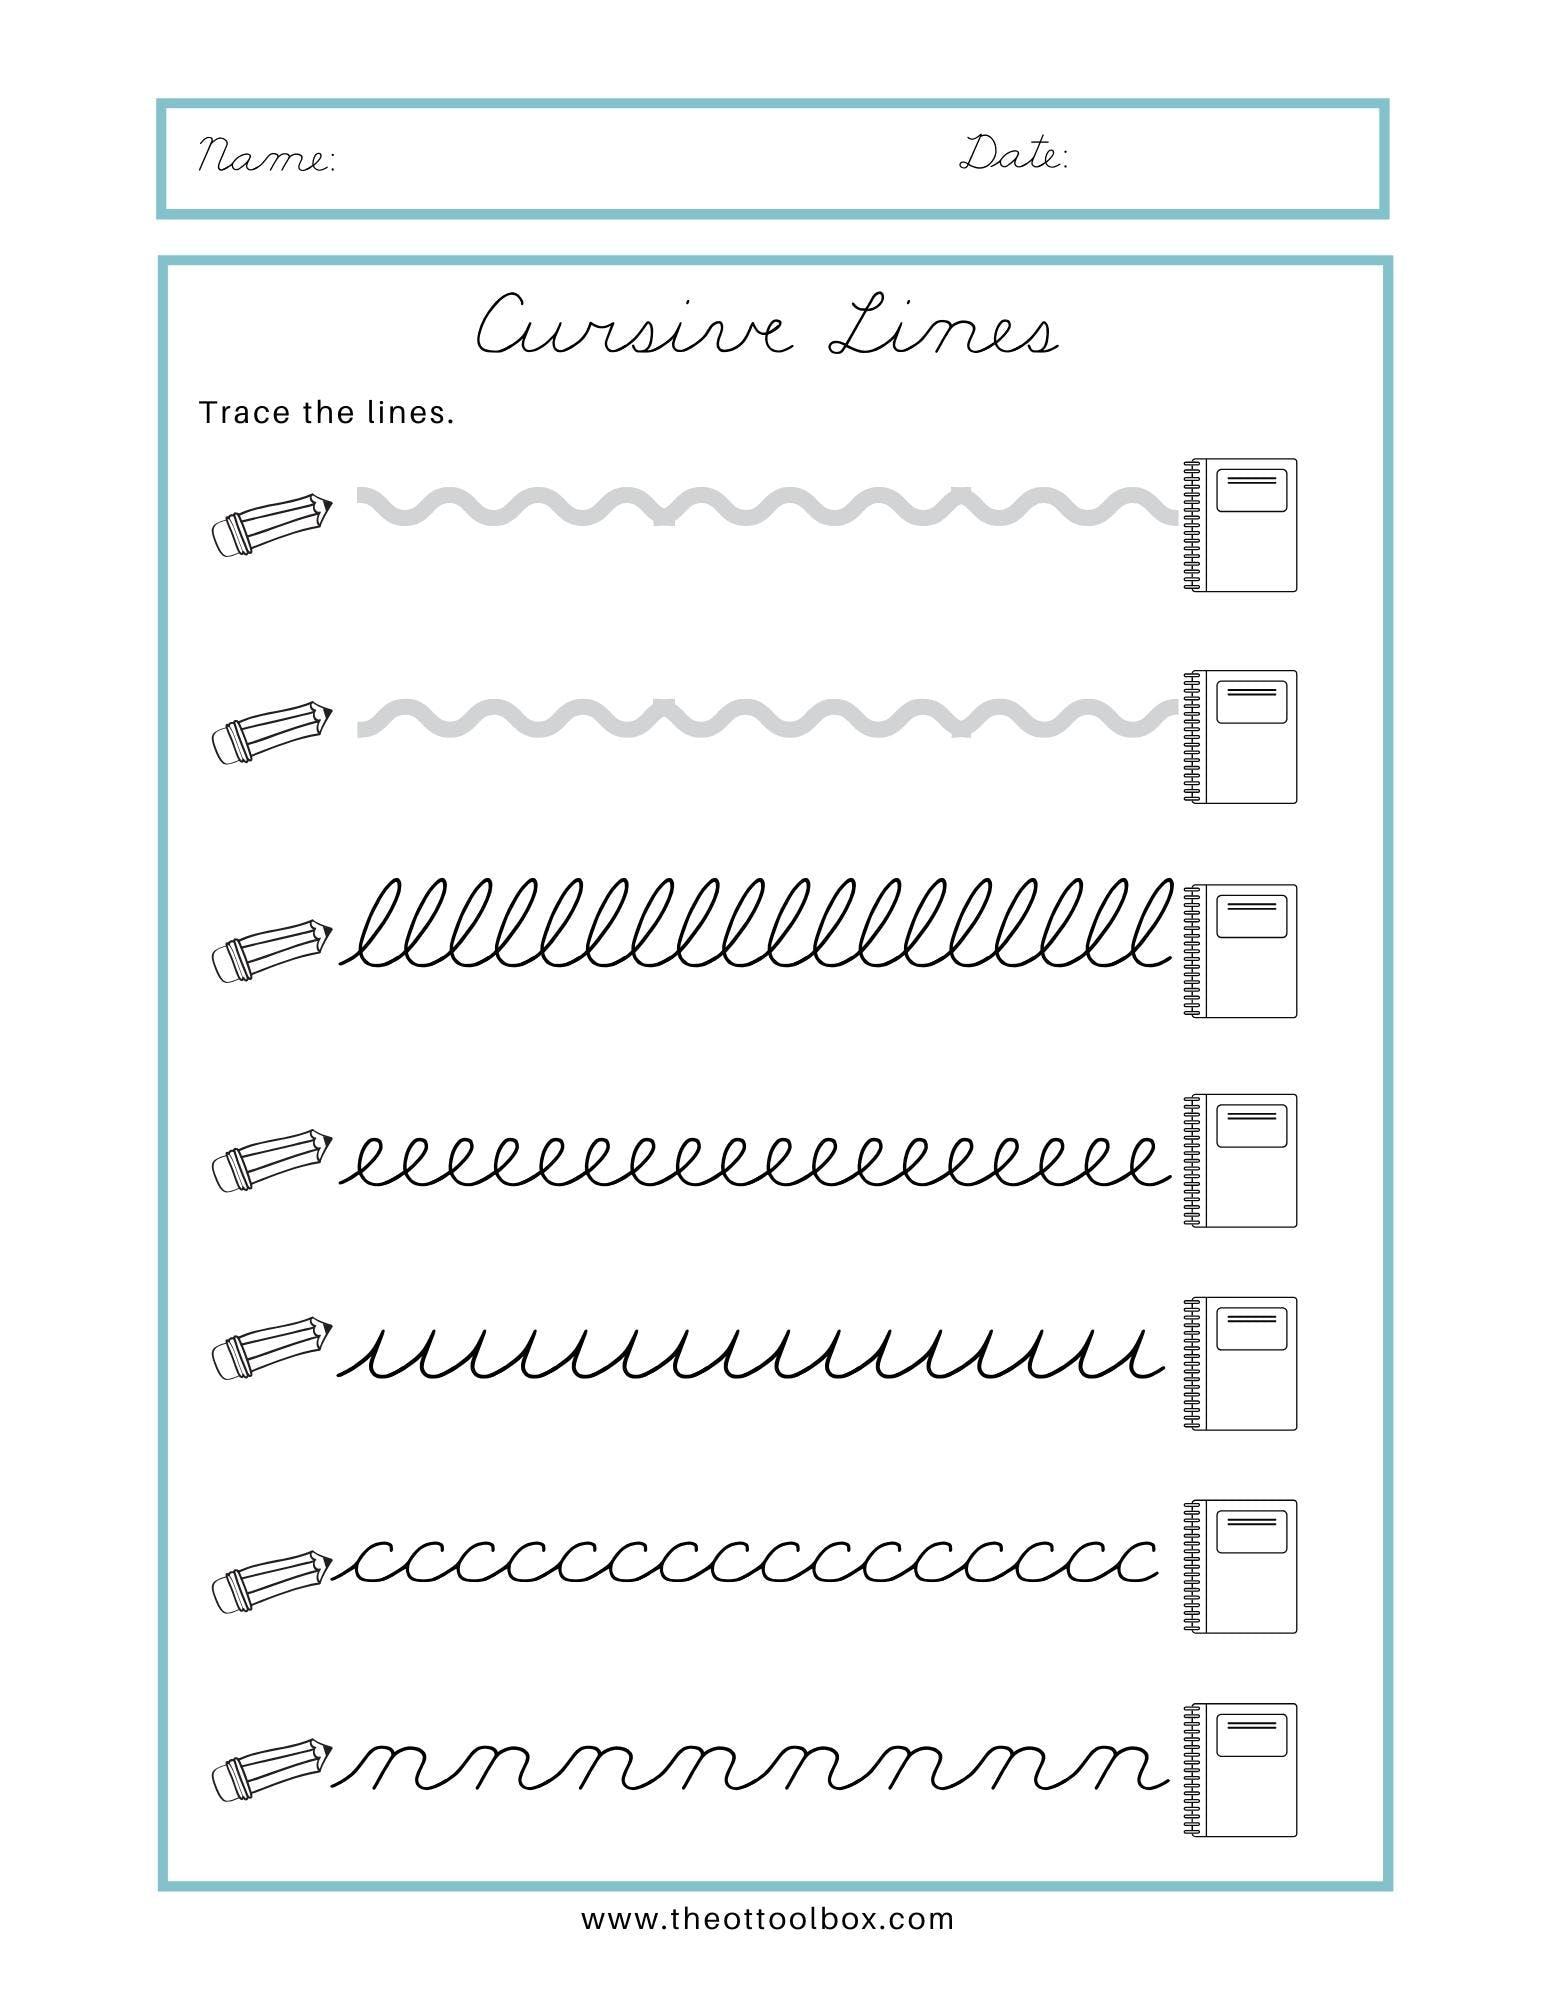 hight resolution of Cursive Writing for Beginners - The OT Toolbox